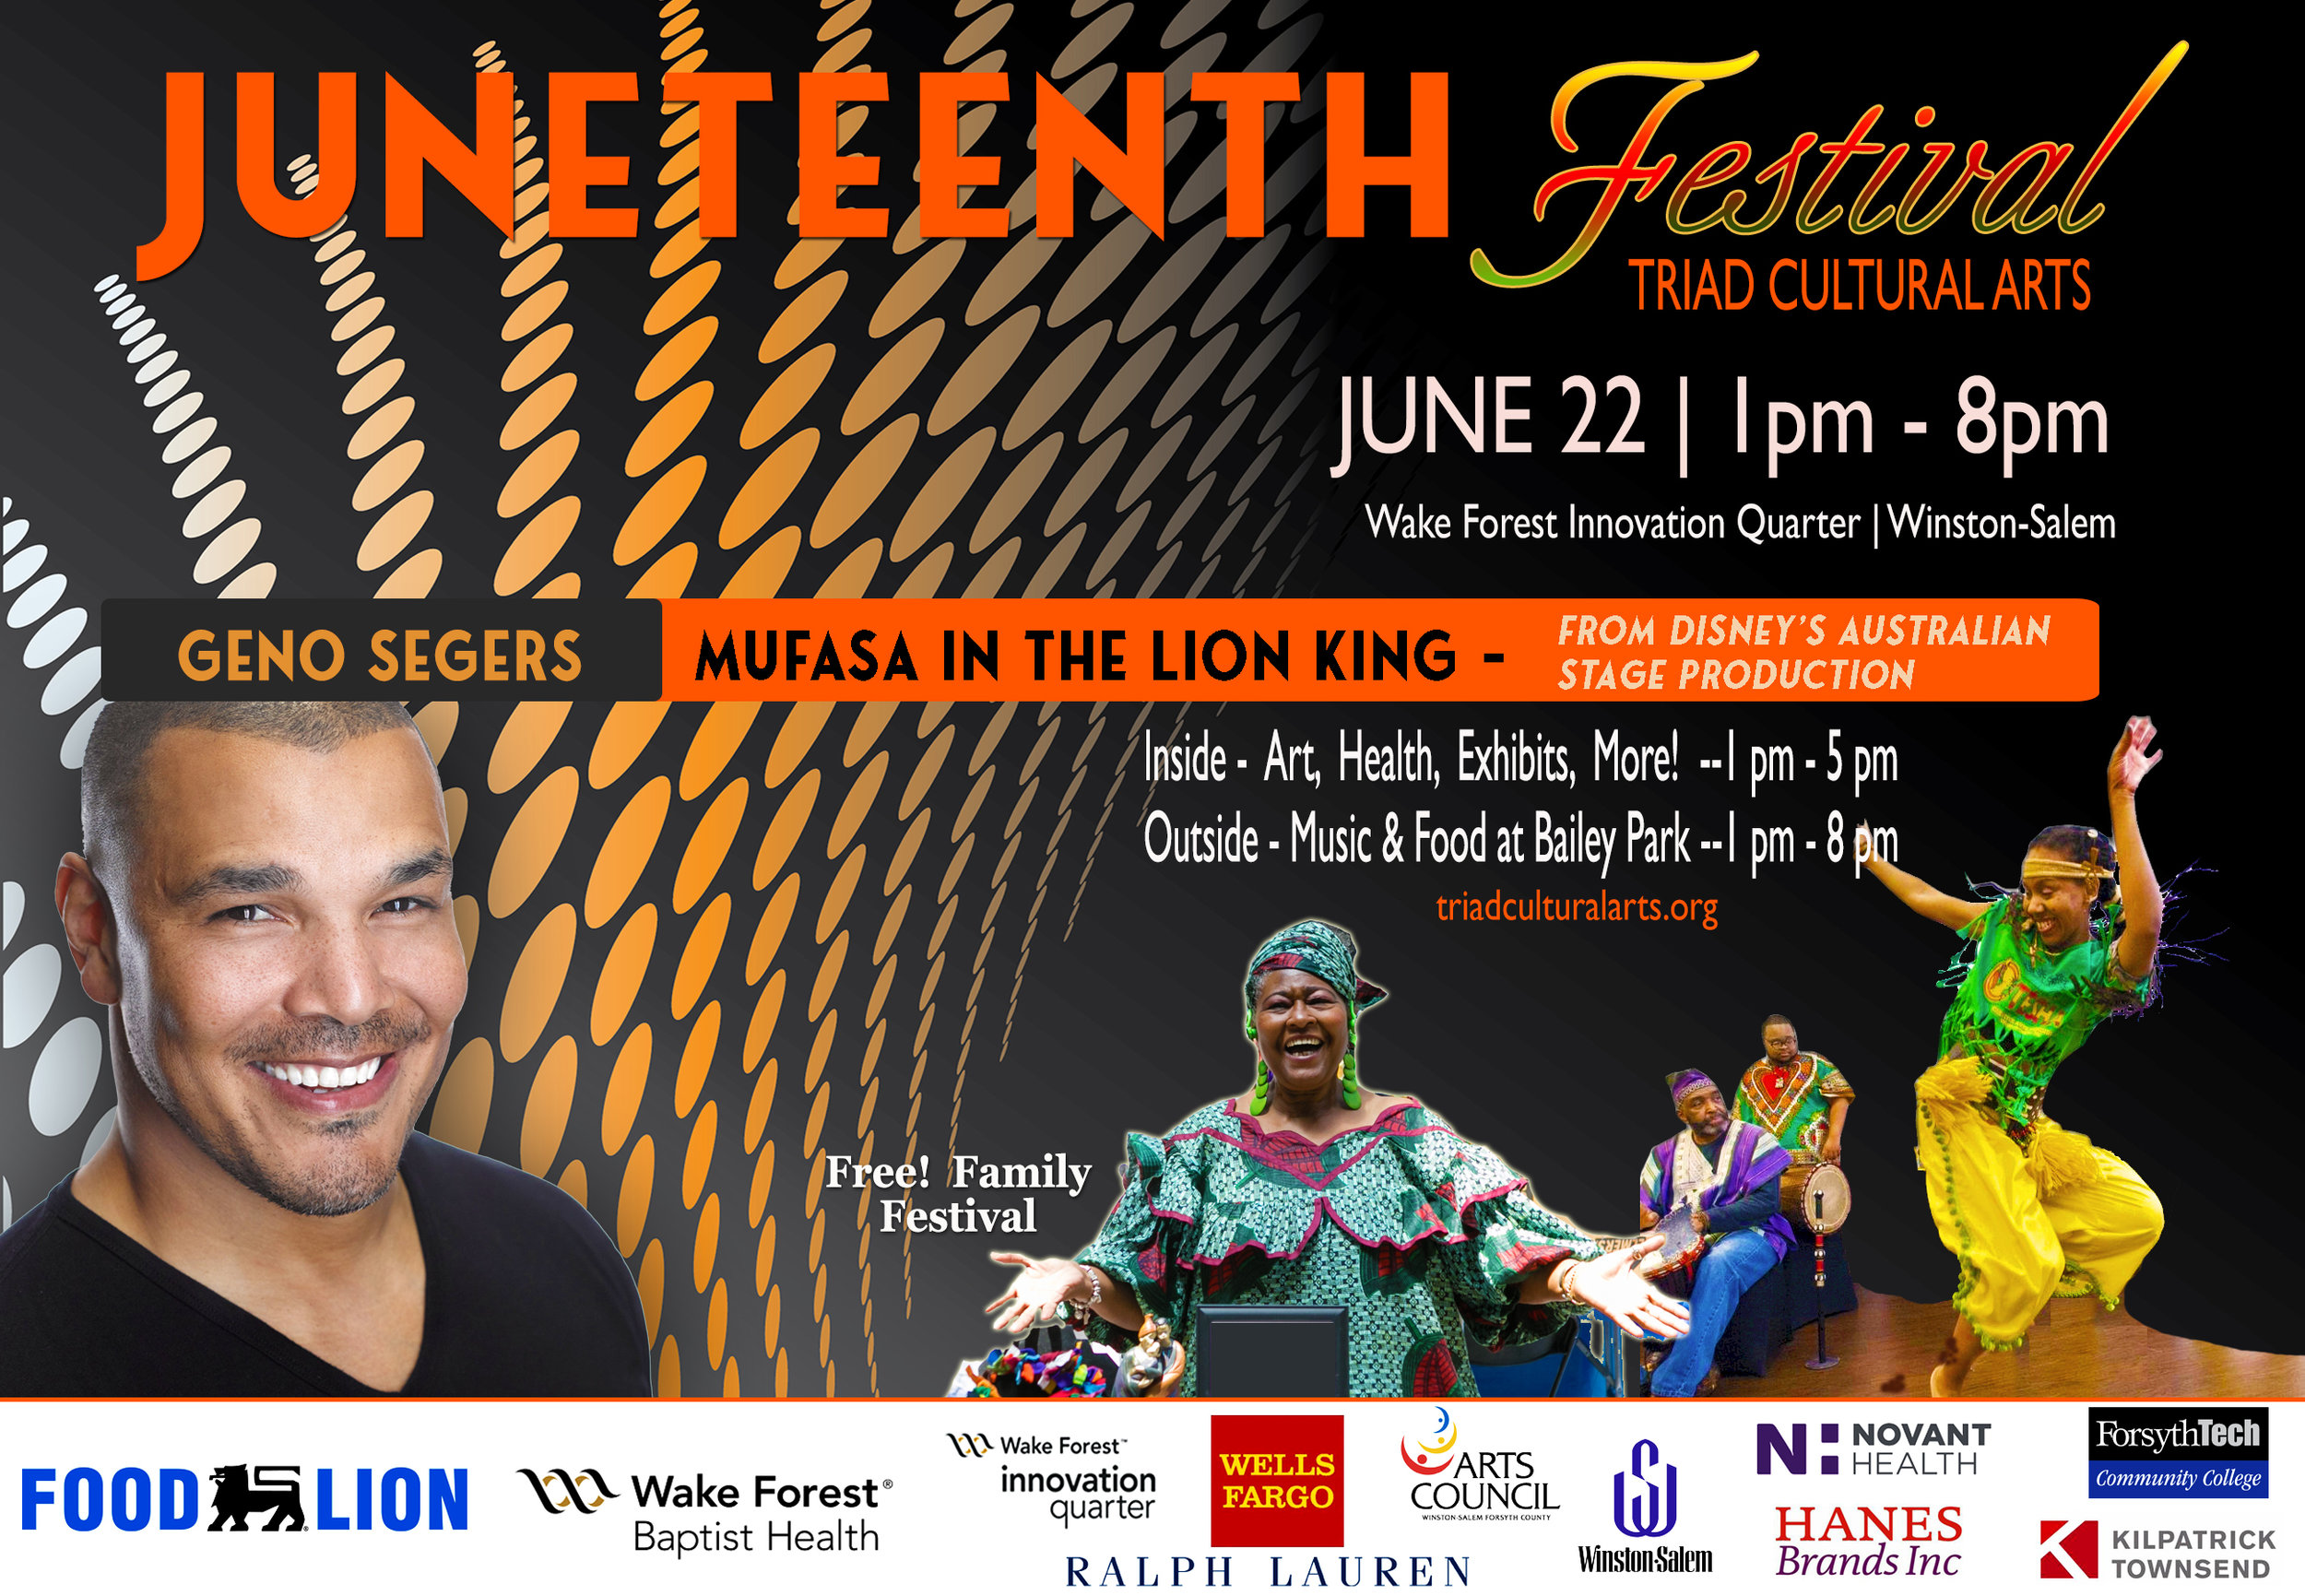 Juneteenth-2019-flyer.jpg